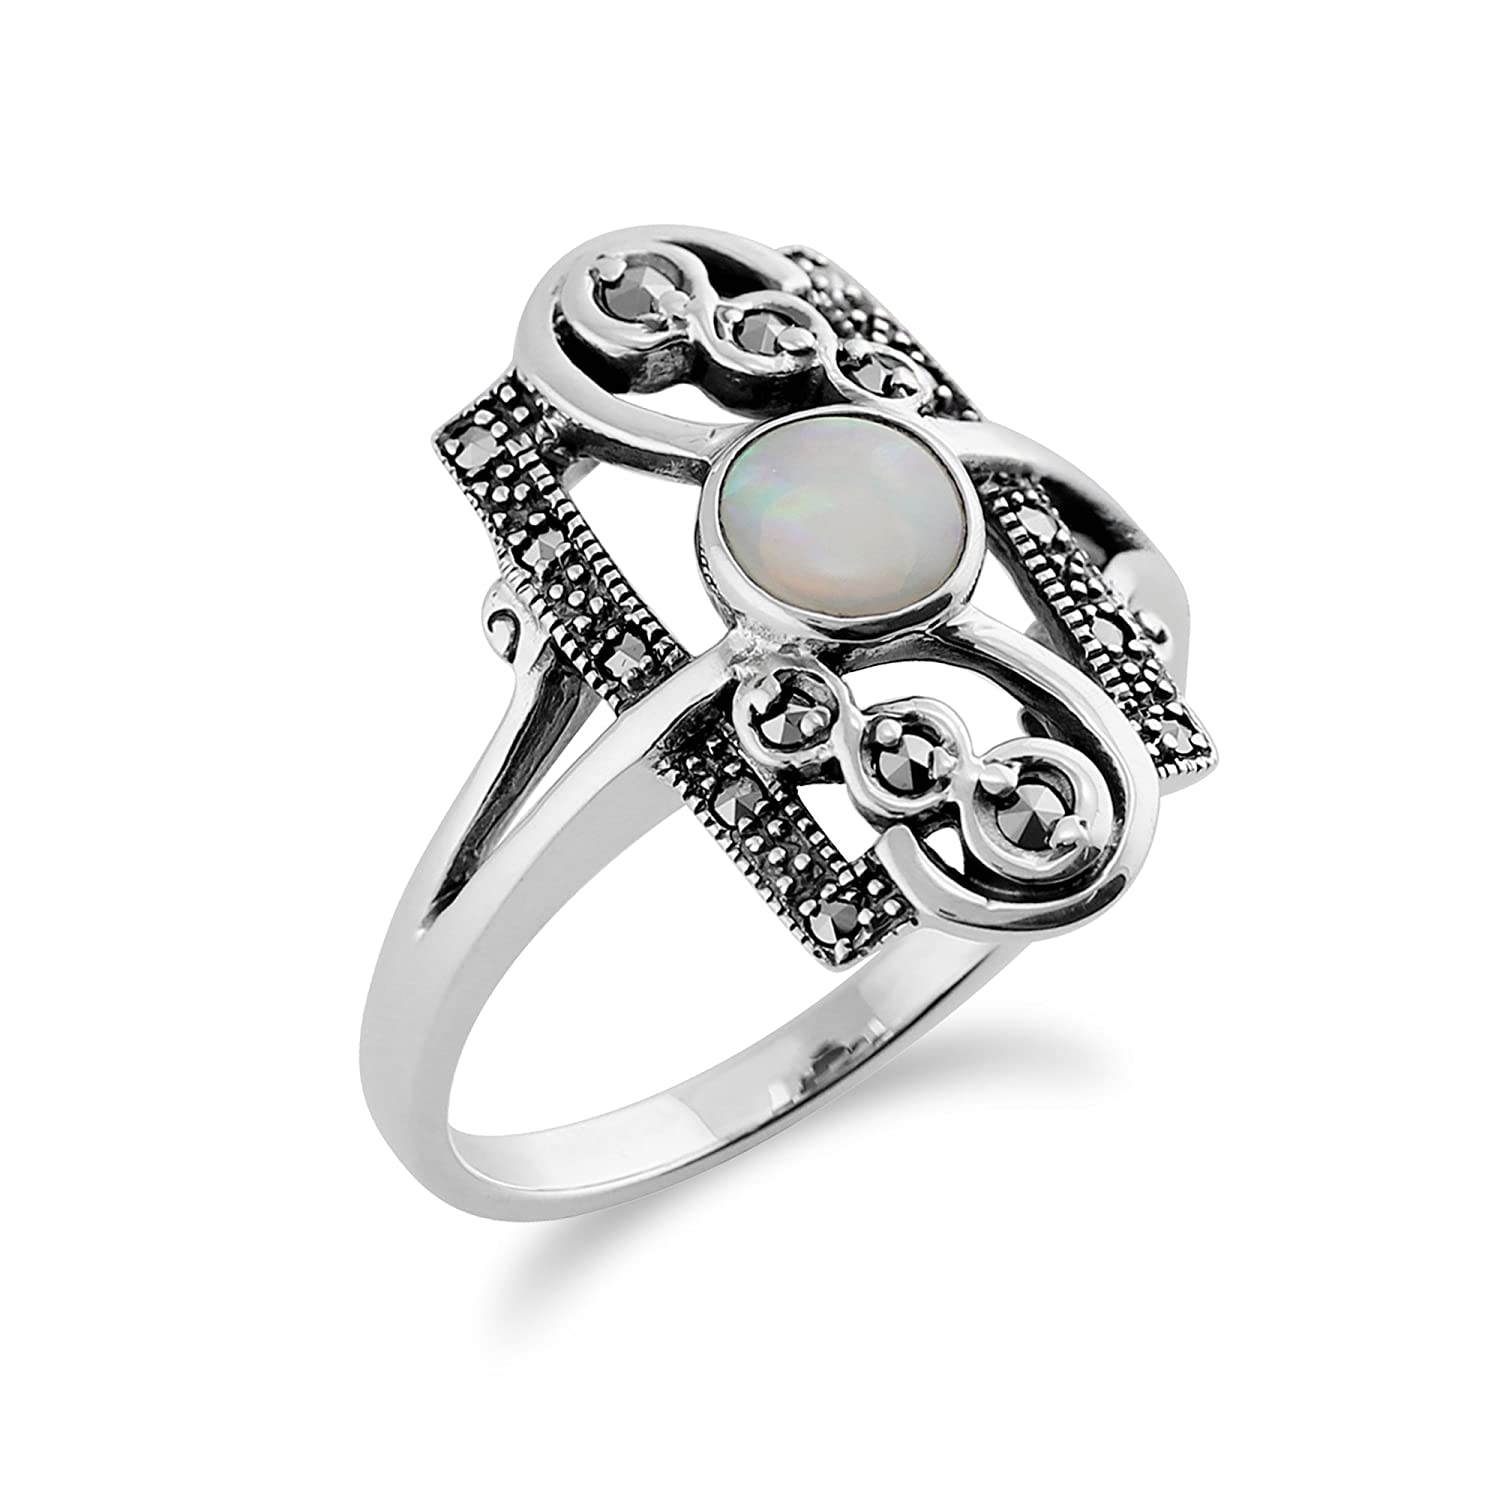 Gemondo 925 Sterling Silver 0.28ct Opal Cabochon & 0.15ct Marcasite Classic Art Nouveau Style Ring 6bv1nnn